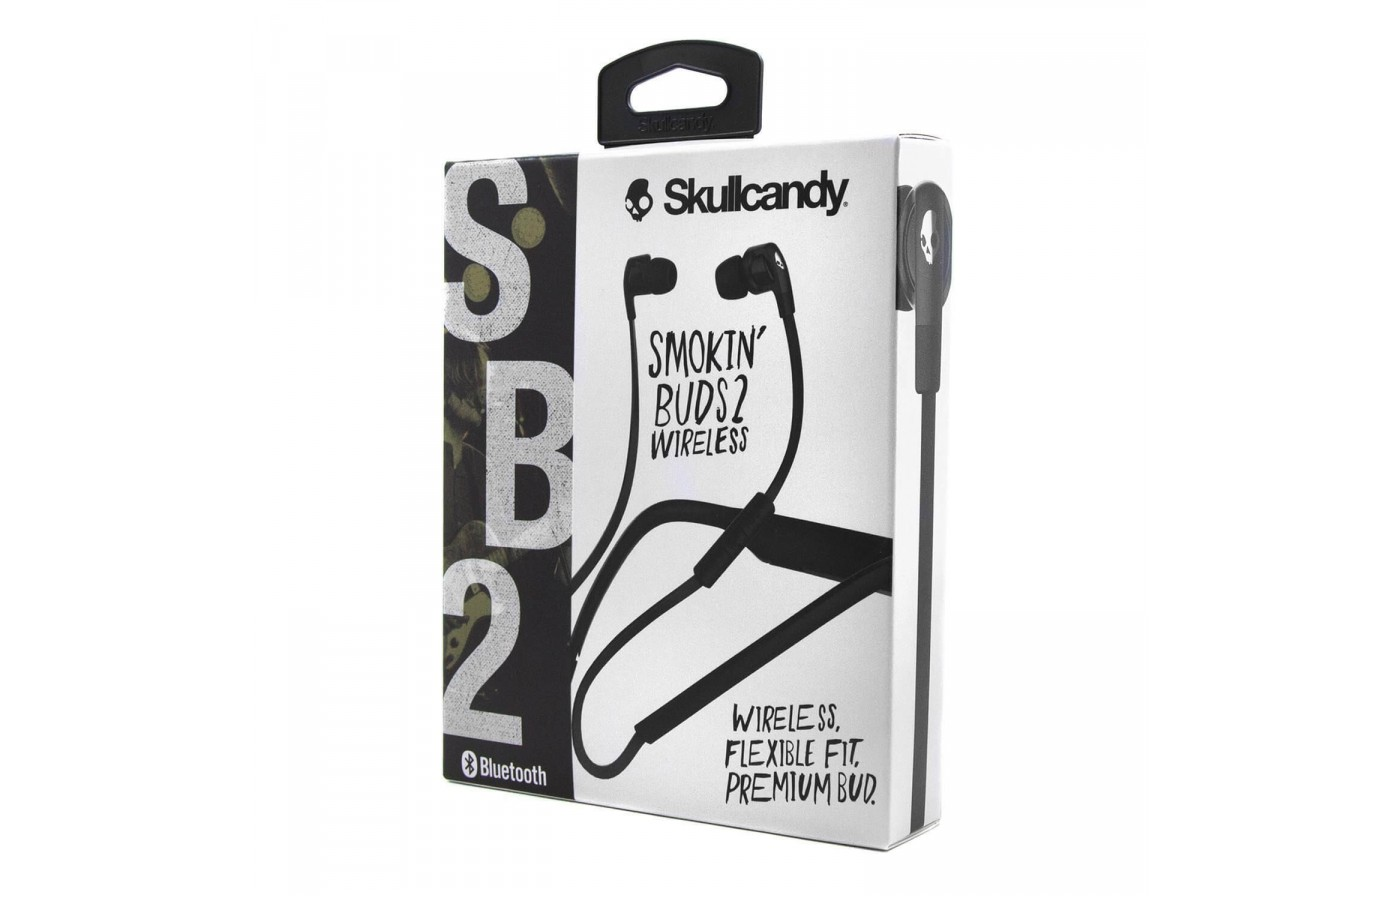 The box containing the Skullcandy Smokin' Buds 2.